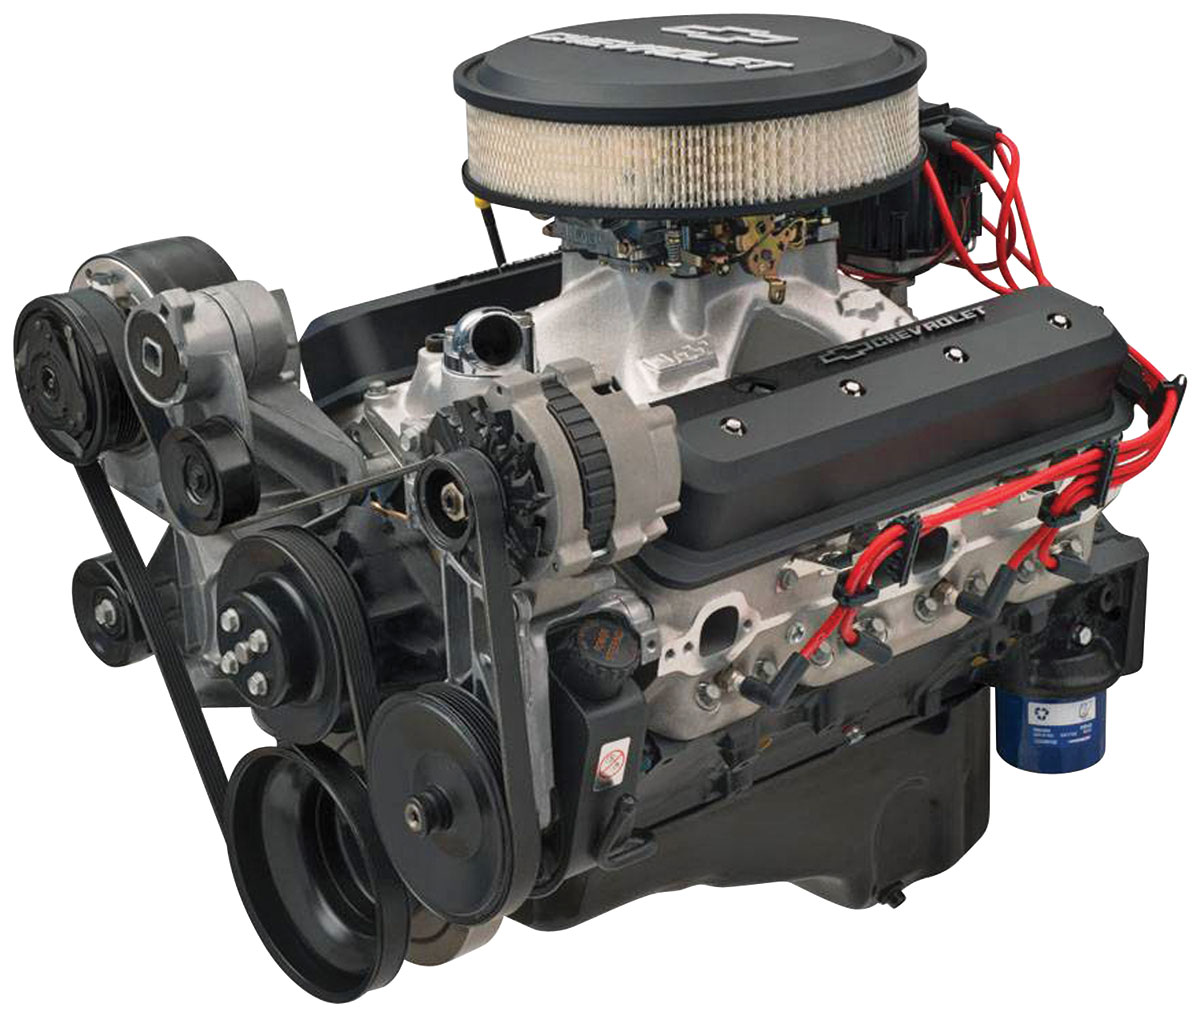 Gm Crate Engines >> Crate Engine Gm Chevrolet Zz6 Turnkey